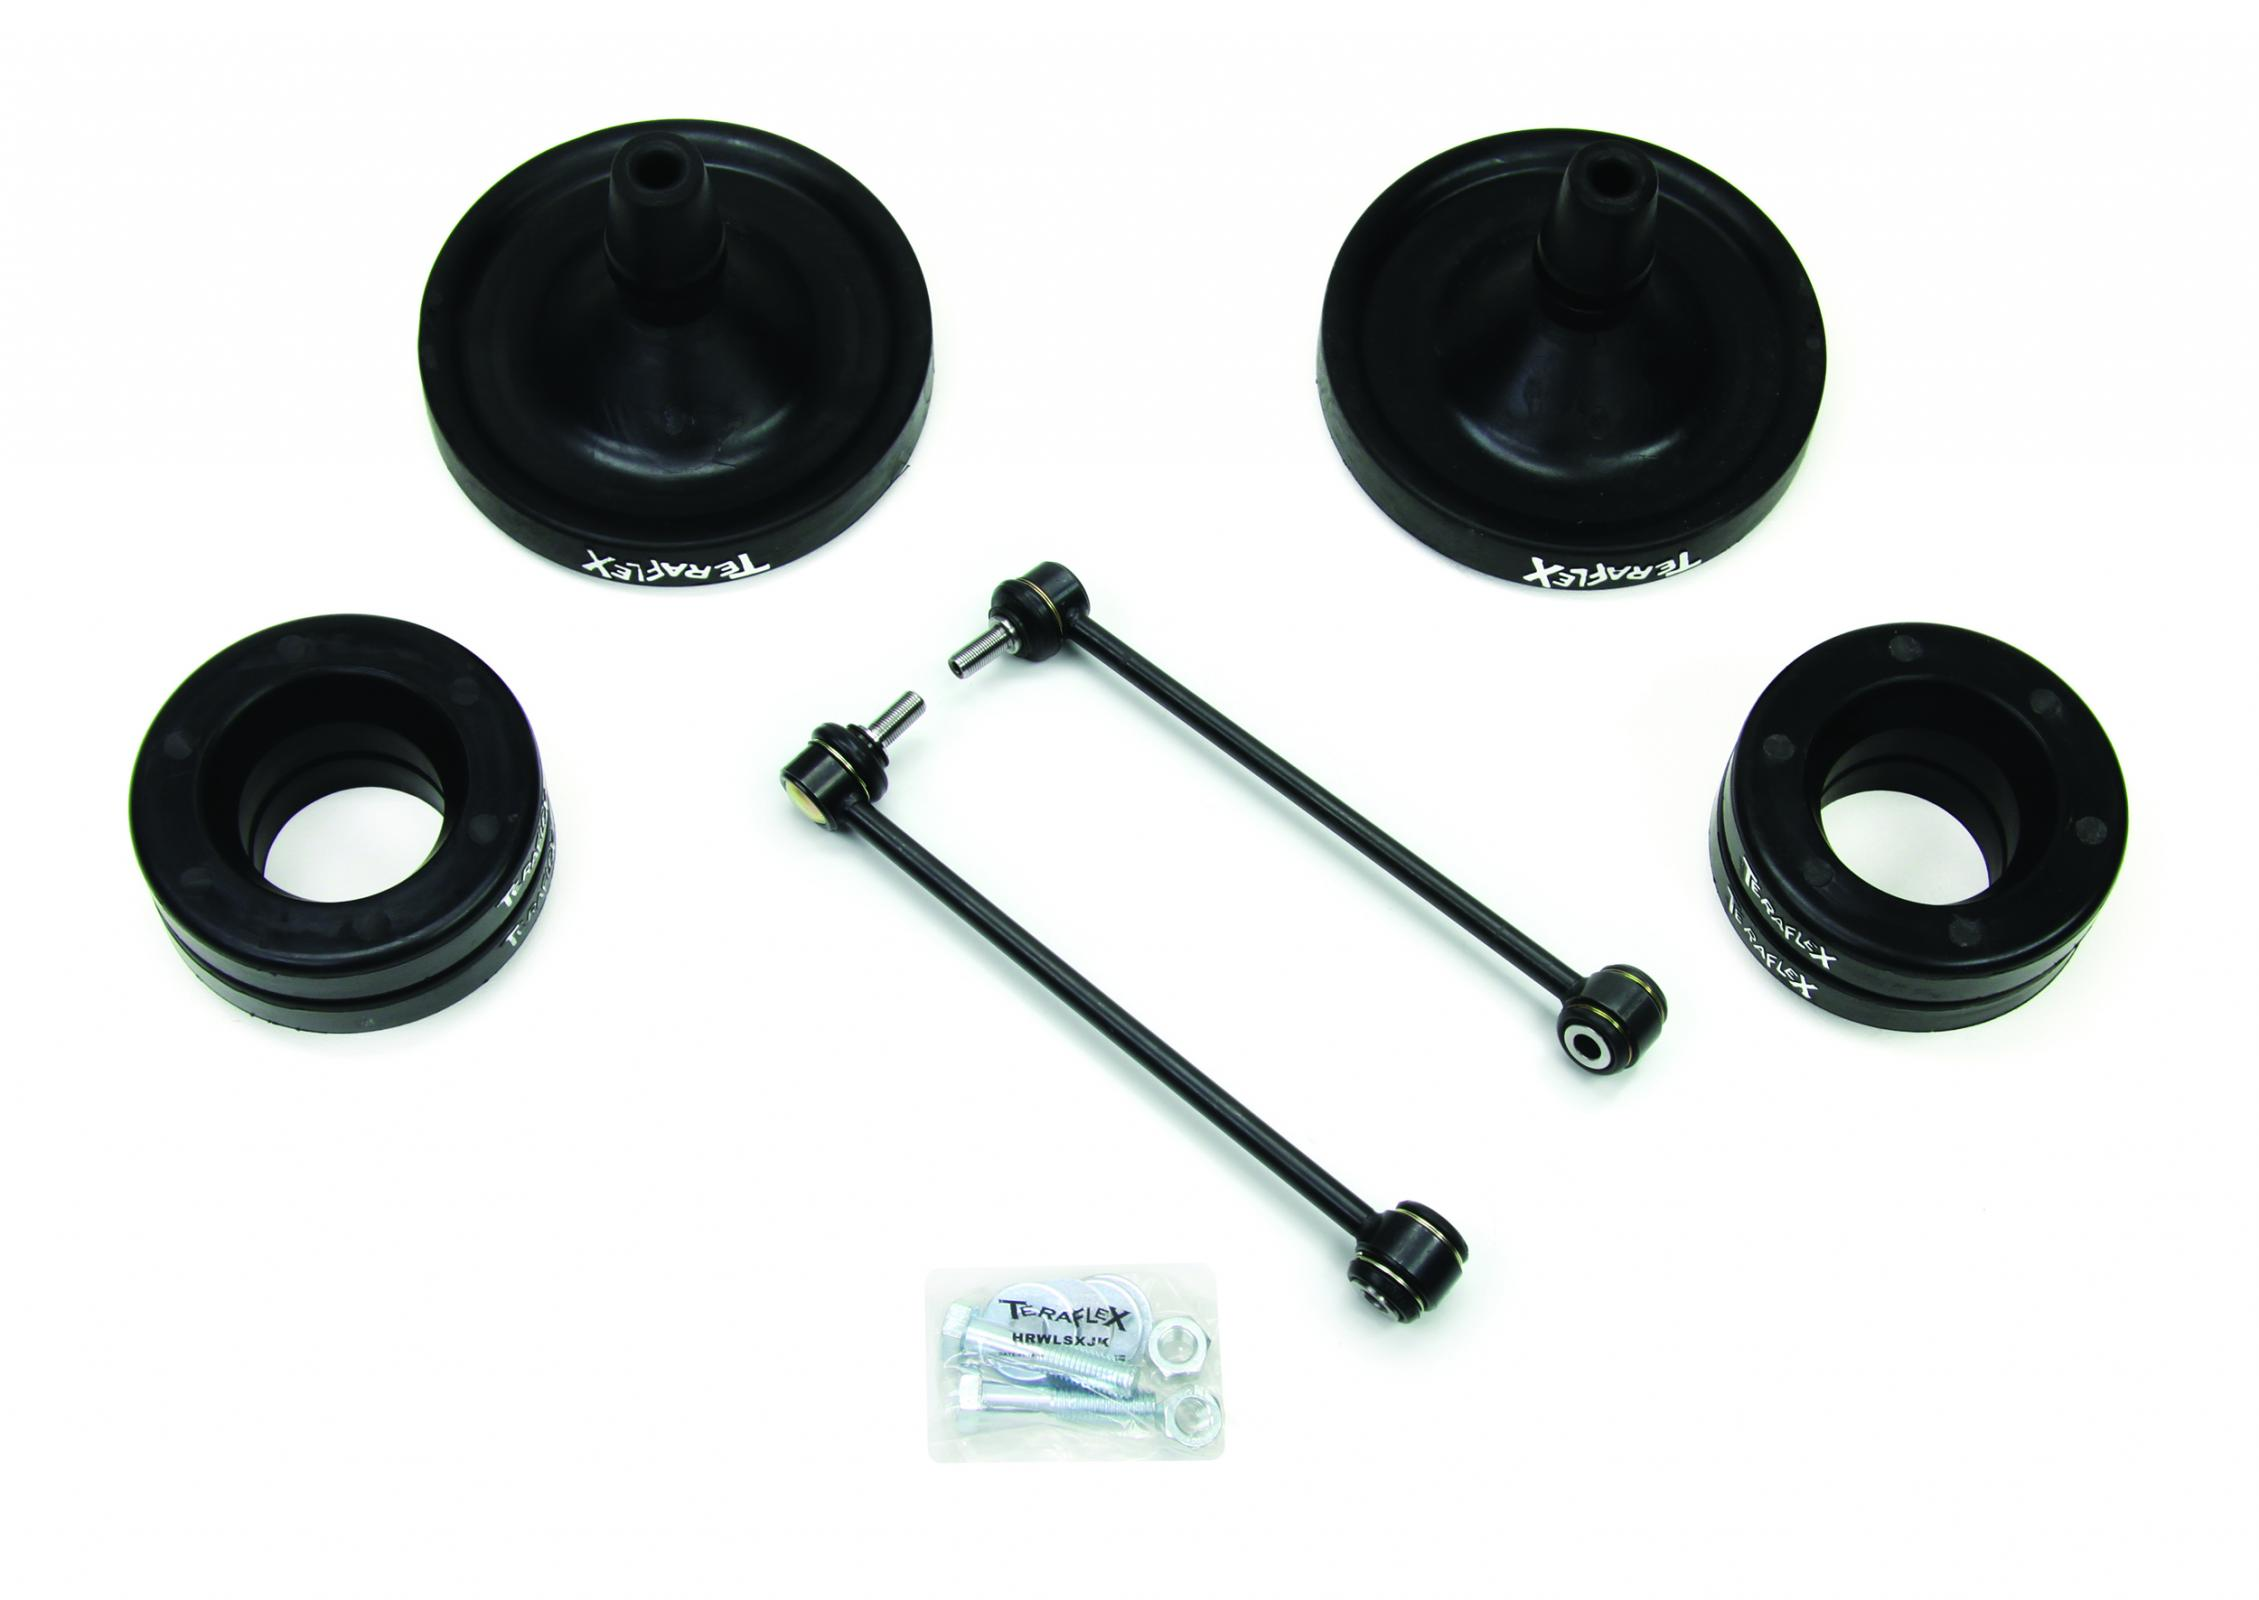 Teraflex 1.5in Suspension Leveling Kit - JK